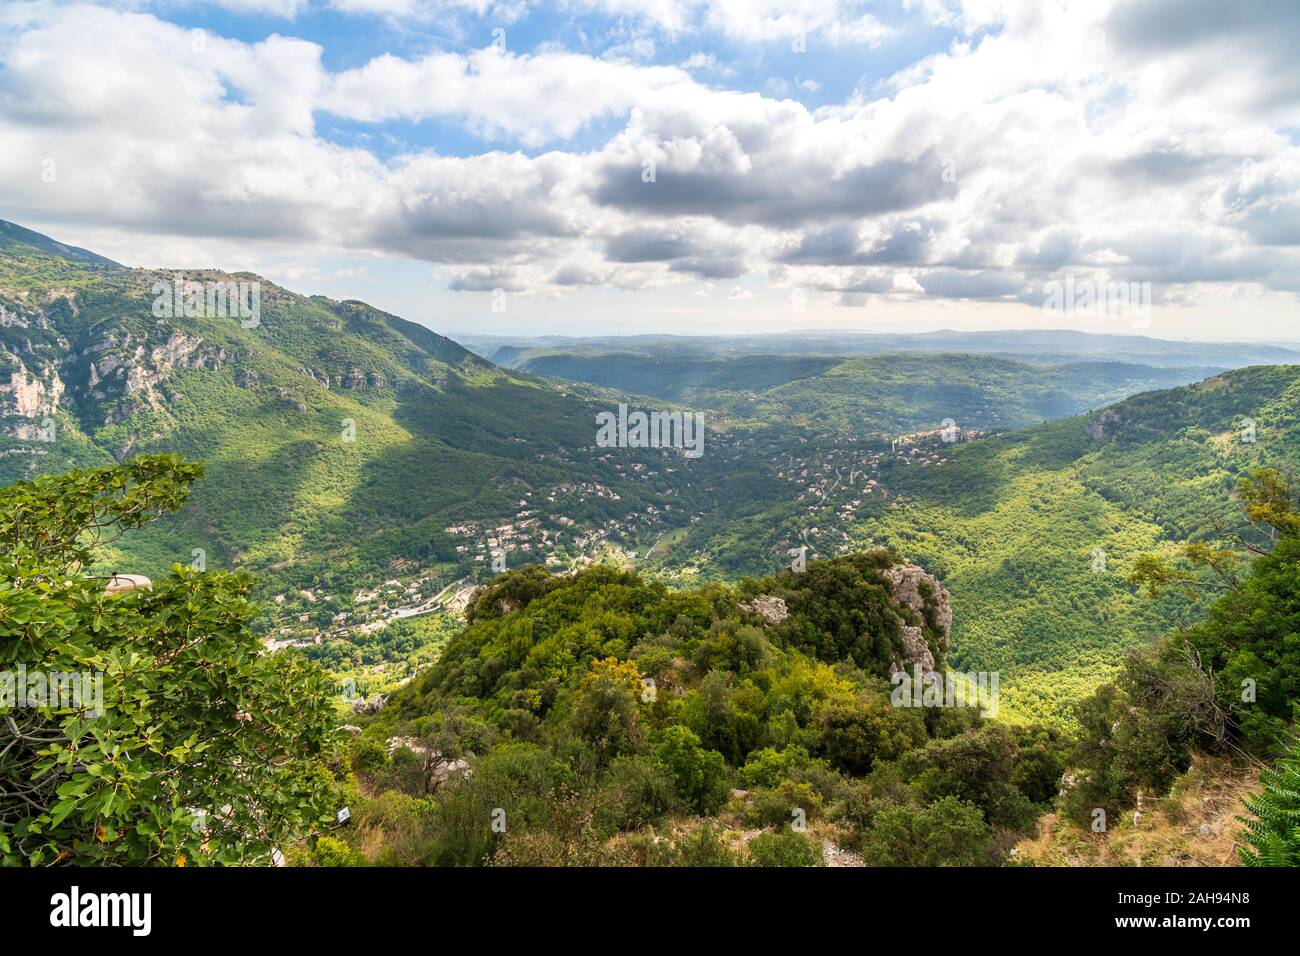 View of the Alpes-Maritimes mountains and valleys in the Provence region from the medieval hilltop village of Gourdon, France Stock Photo